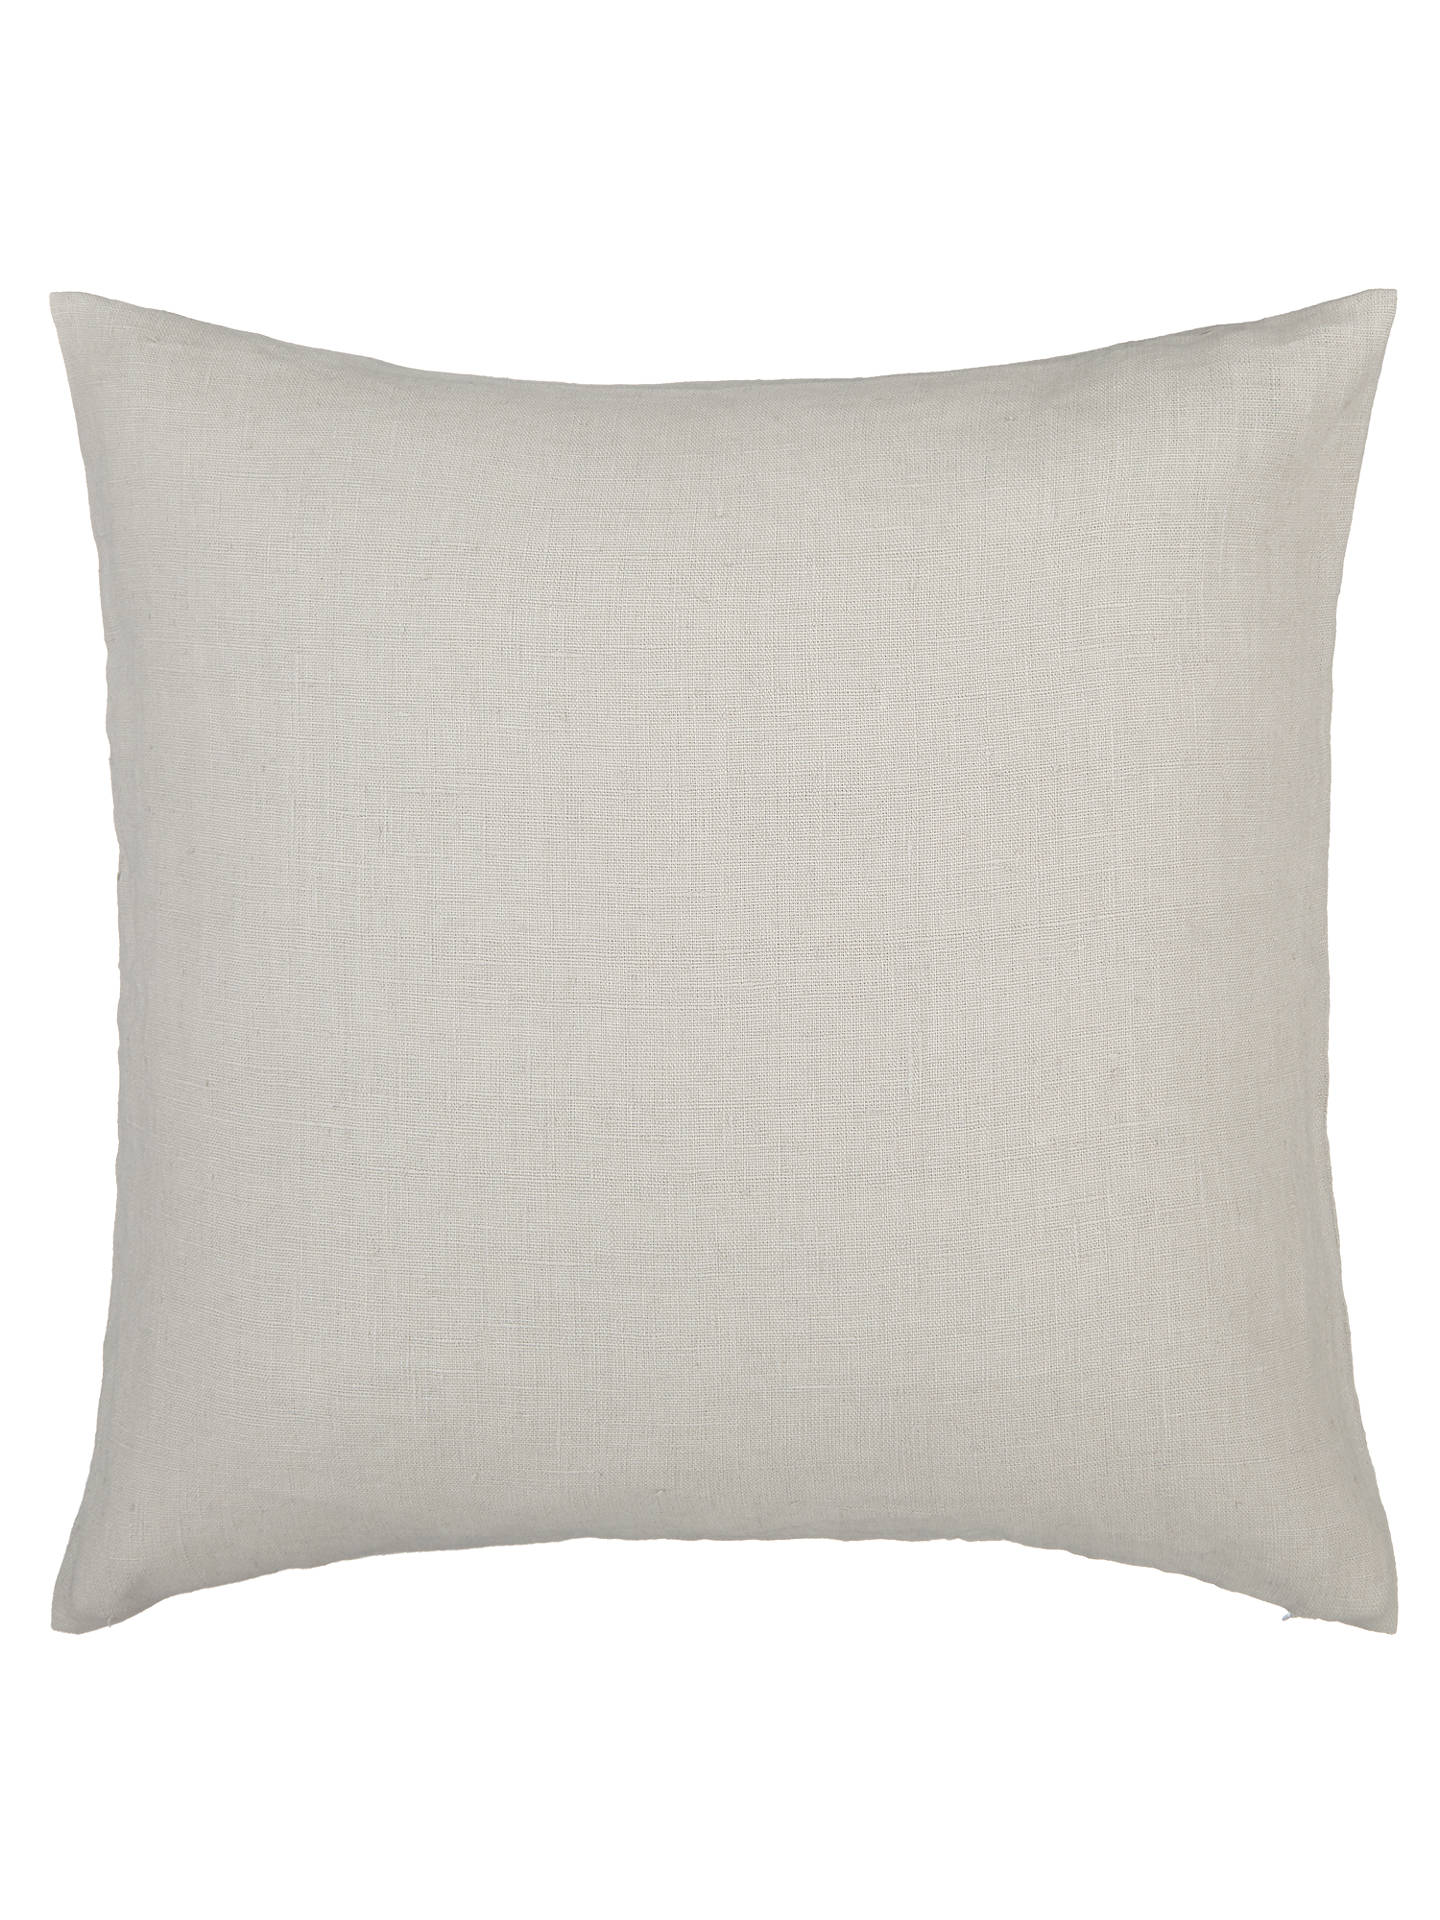 BuyJohn Lewis & Partners Linen Cushion, French Grey Online at johnlewis.com